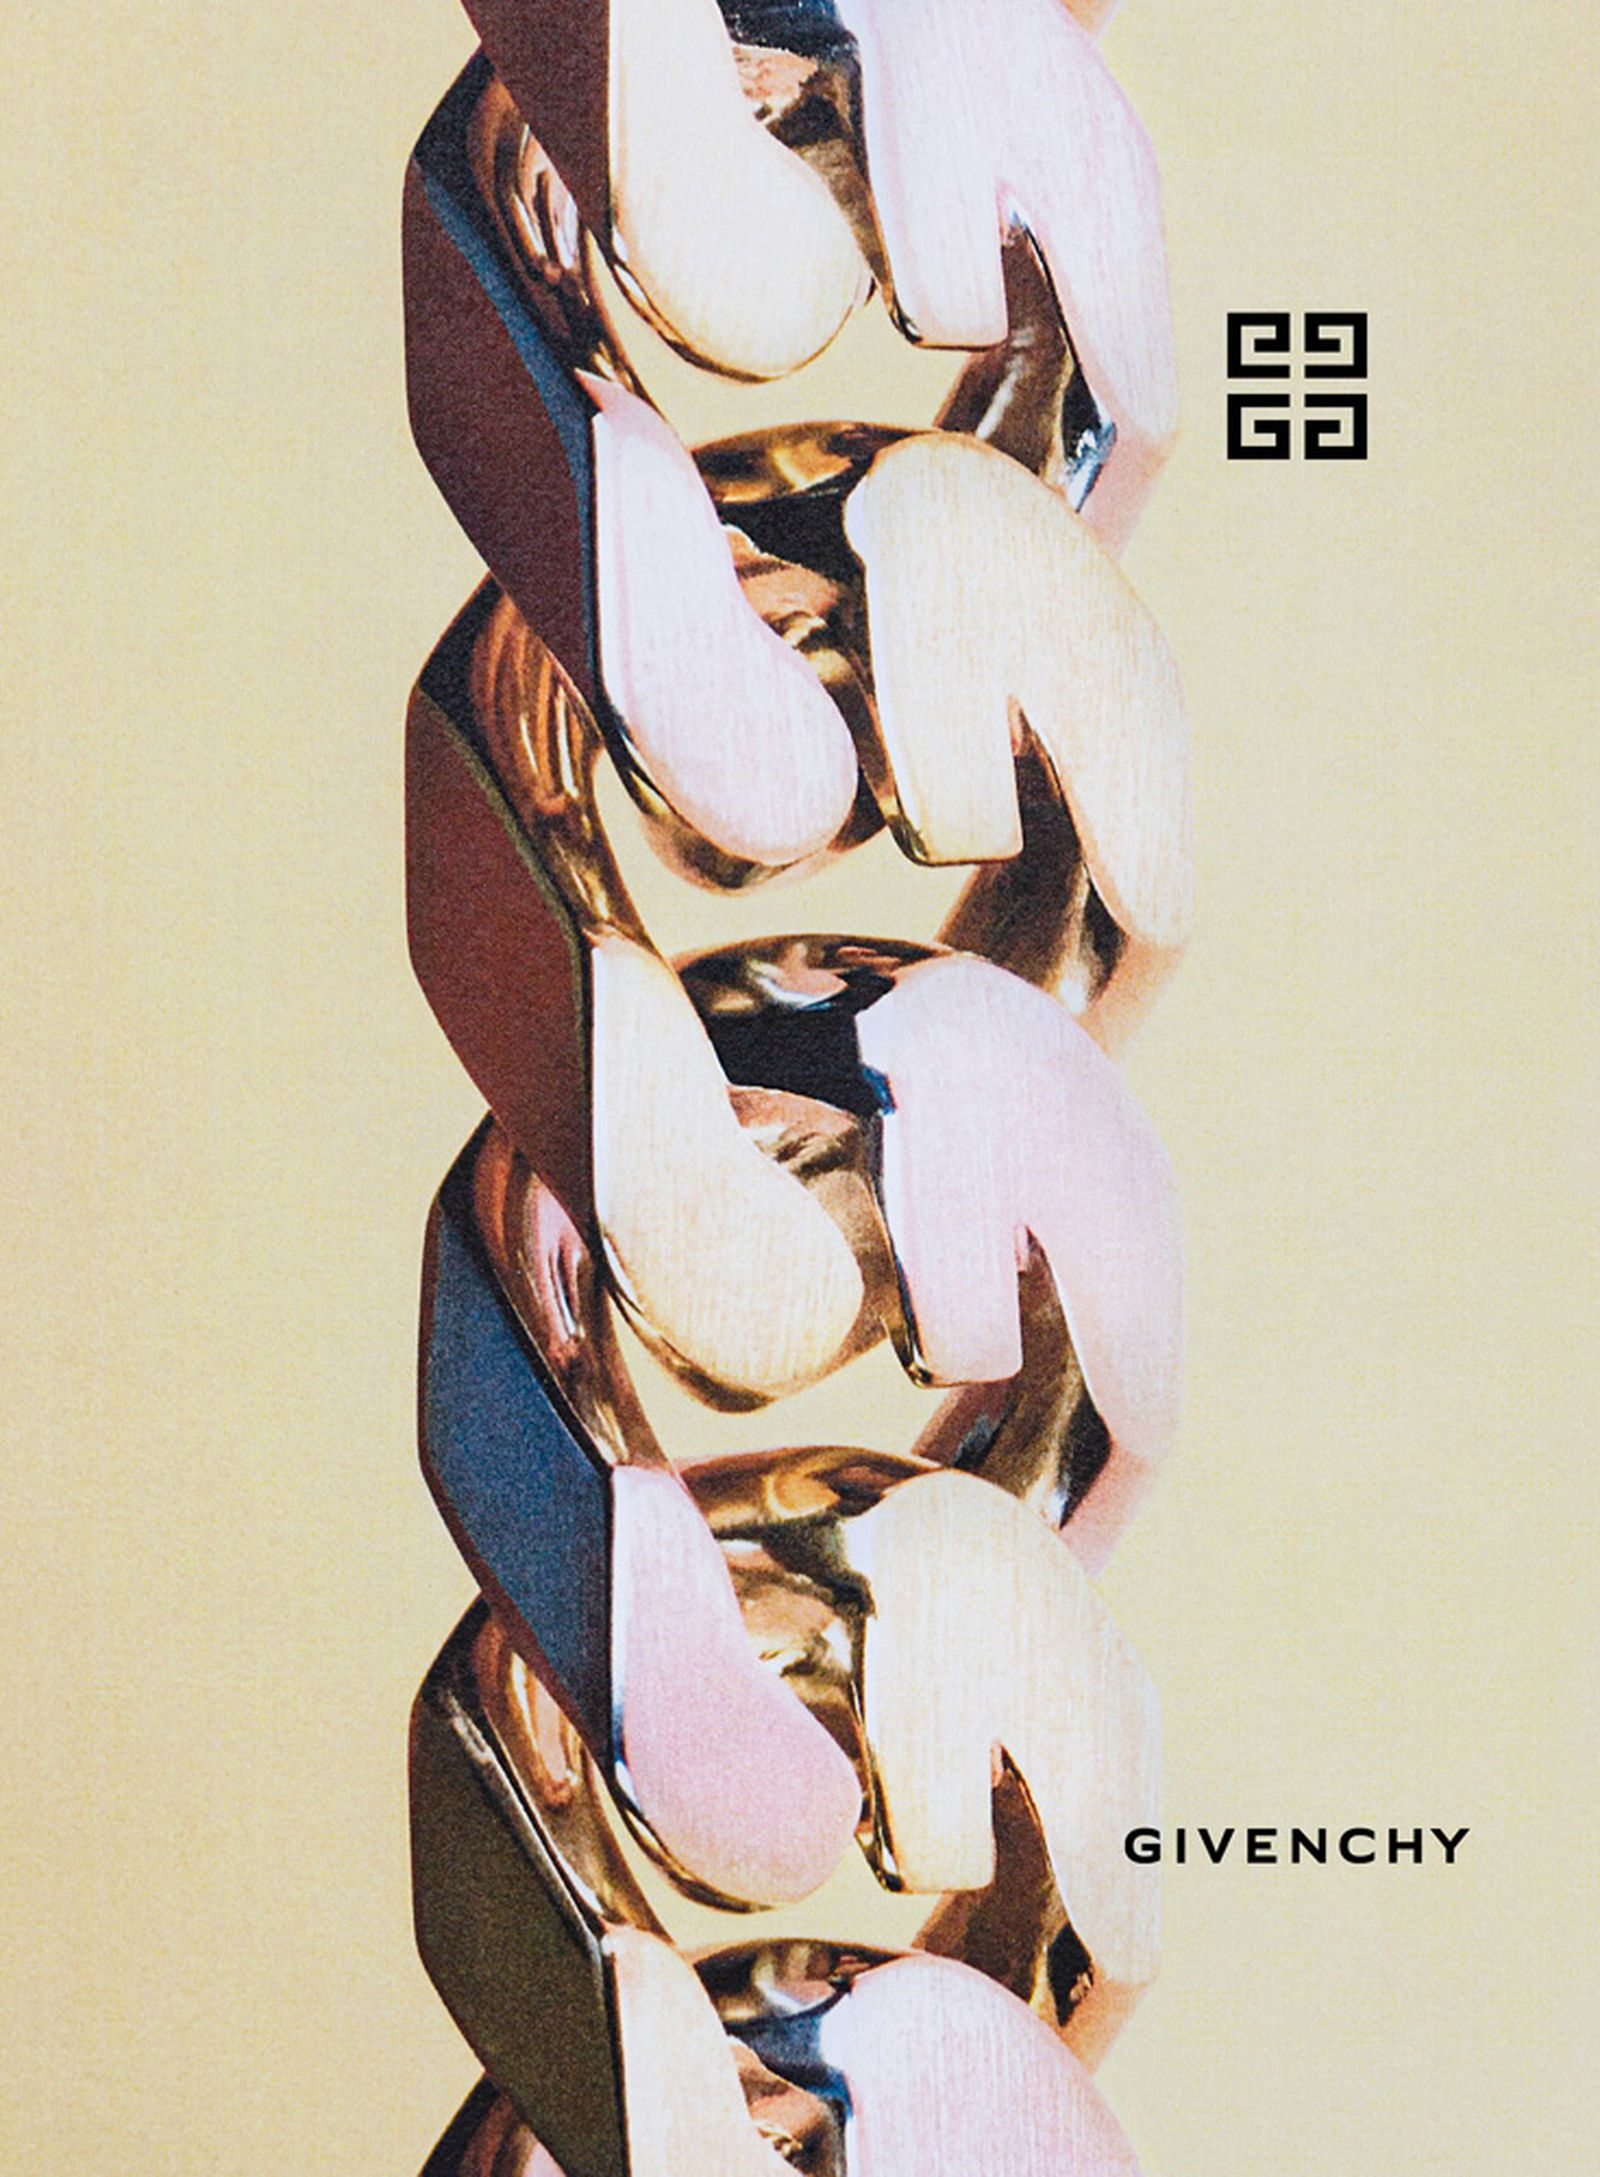 givenchy-new-campaign-05